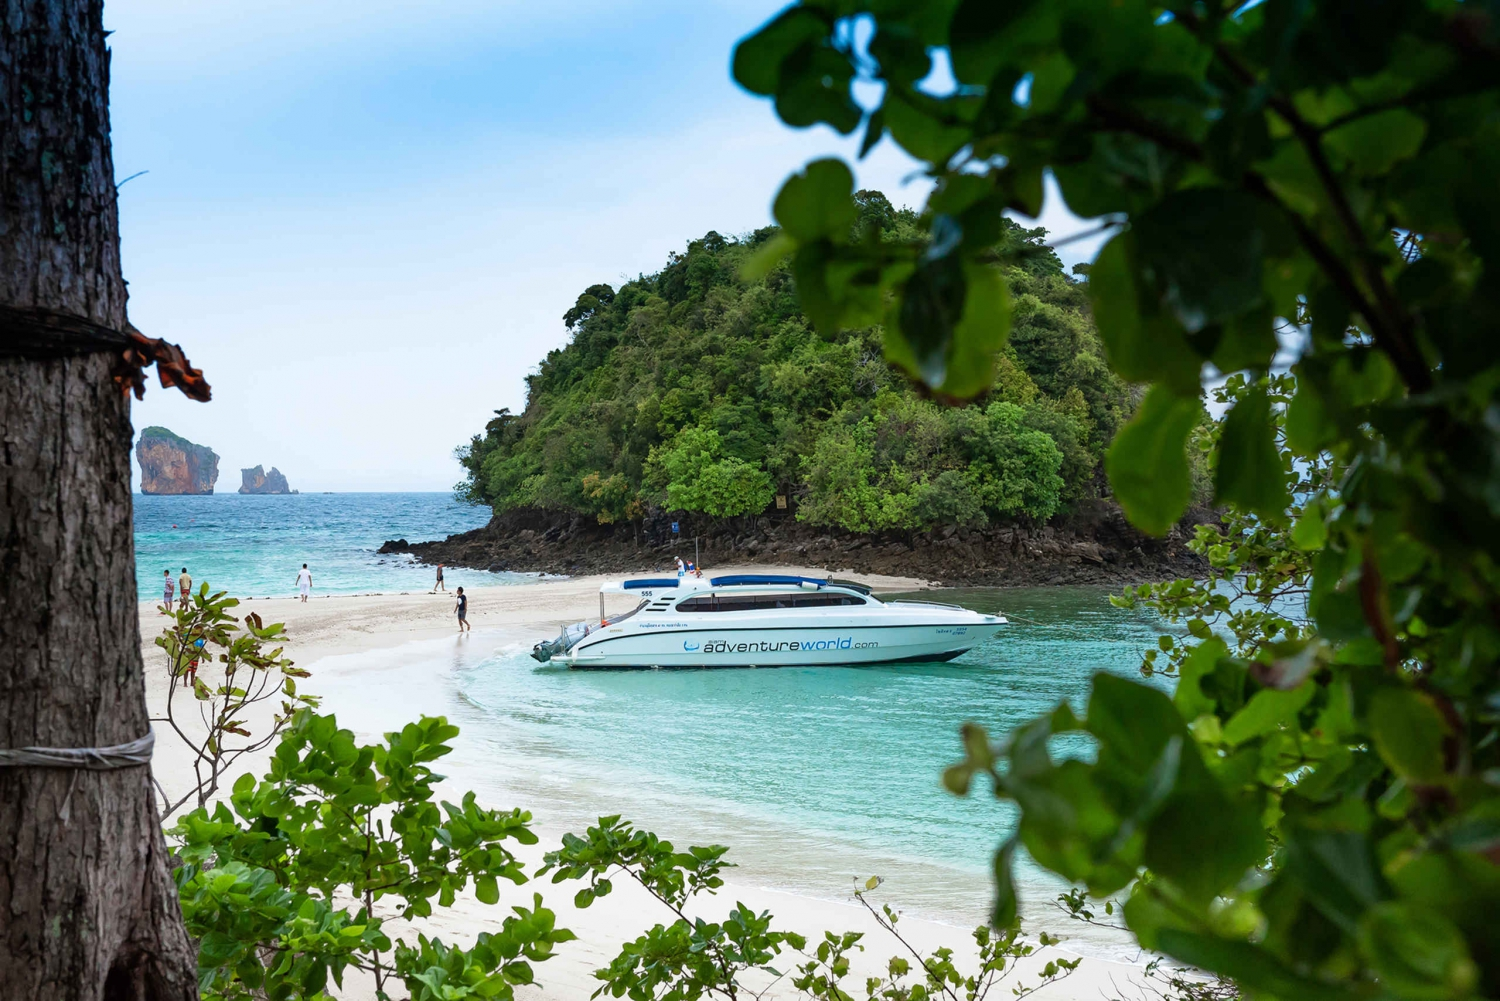 Early Bird 4 Islands & Railay from Phuket/Khaolak